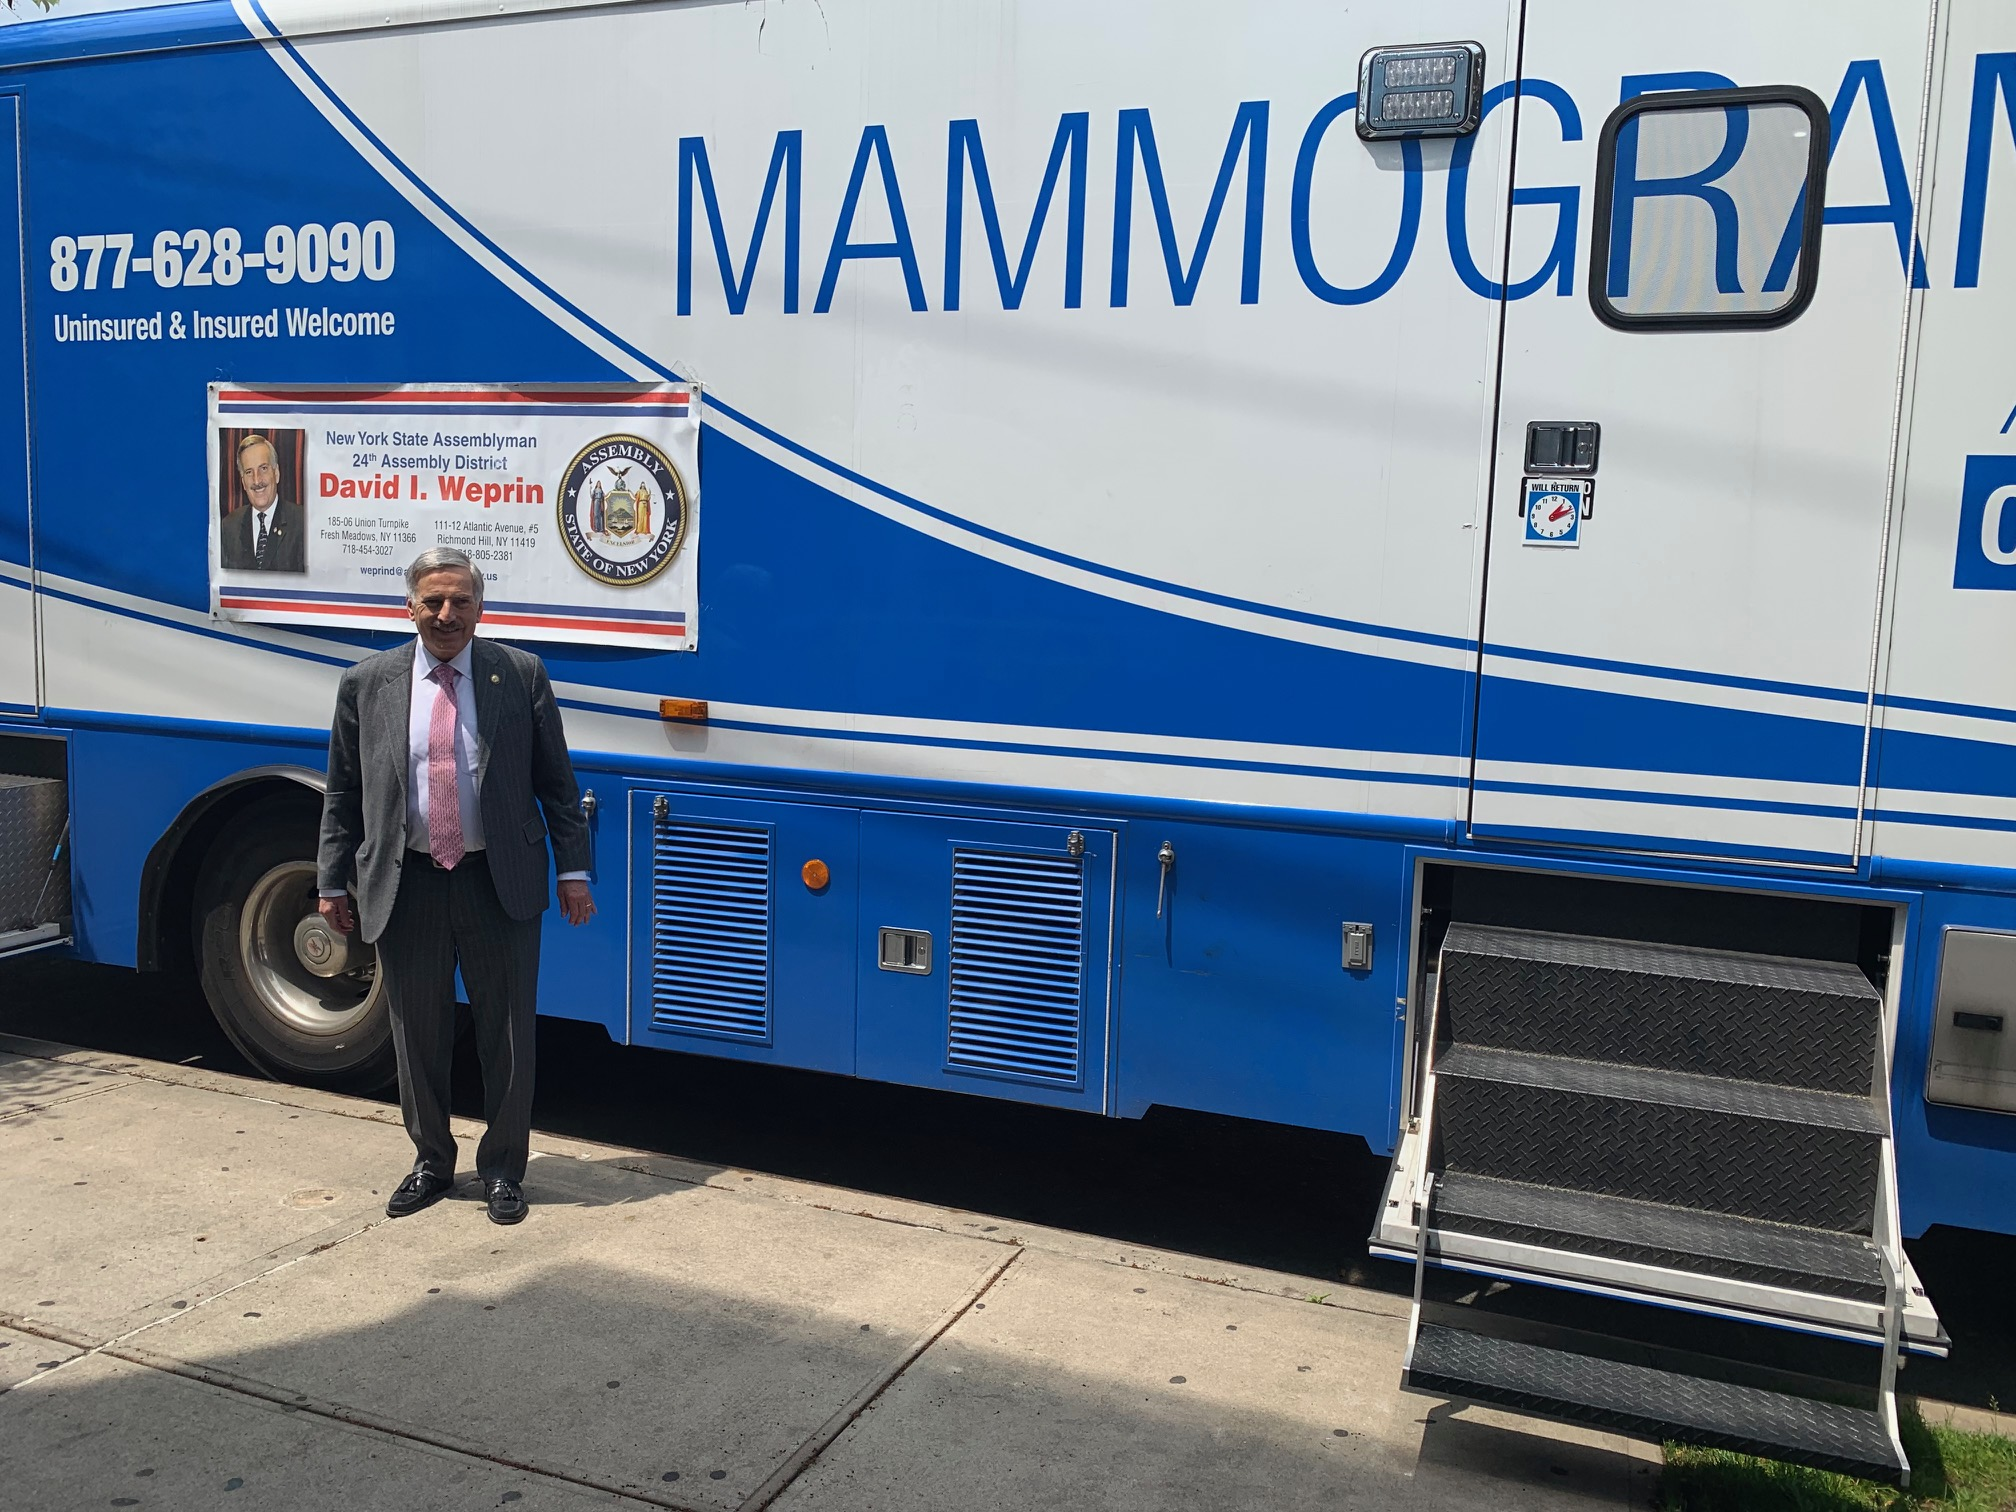 Assemblyman David Weprin stands with the Mammogram Van.